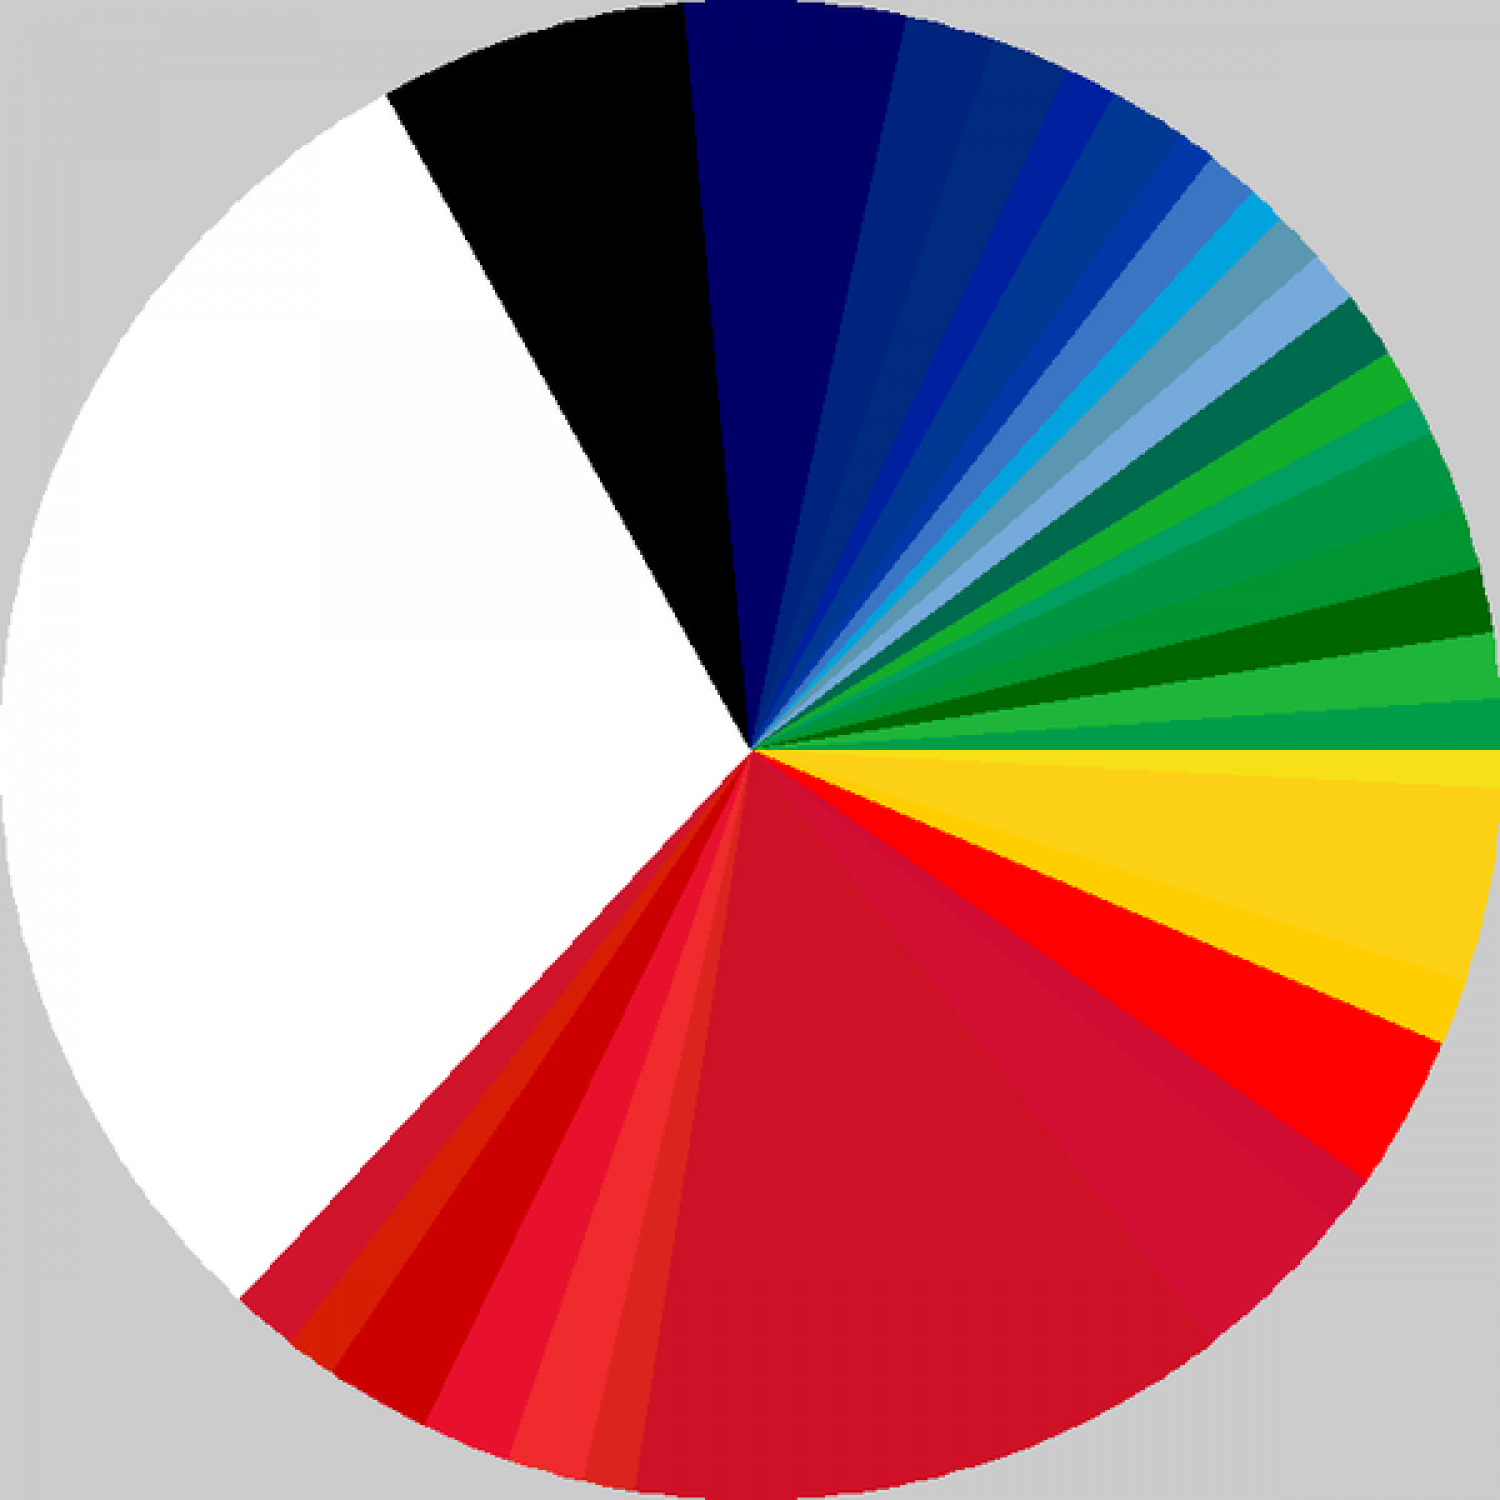 All flags of world combined by Color Usage Infographic